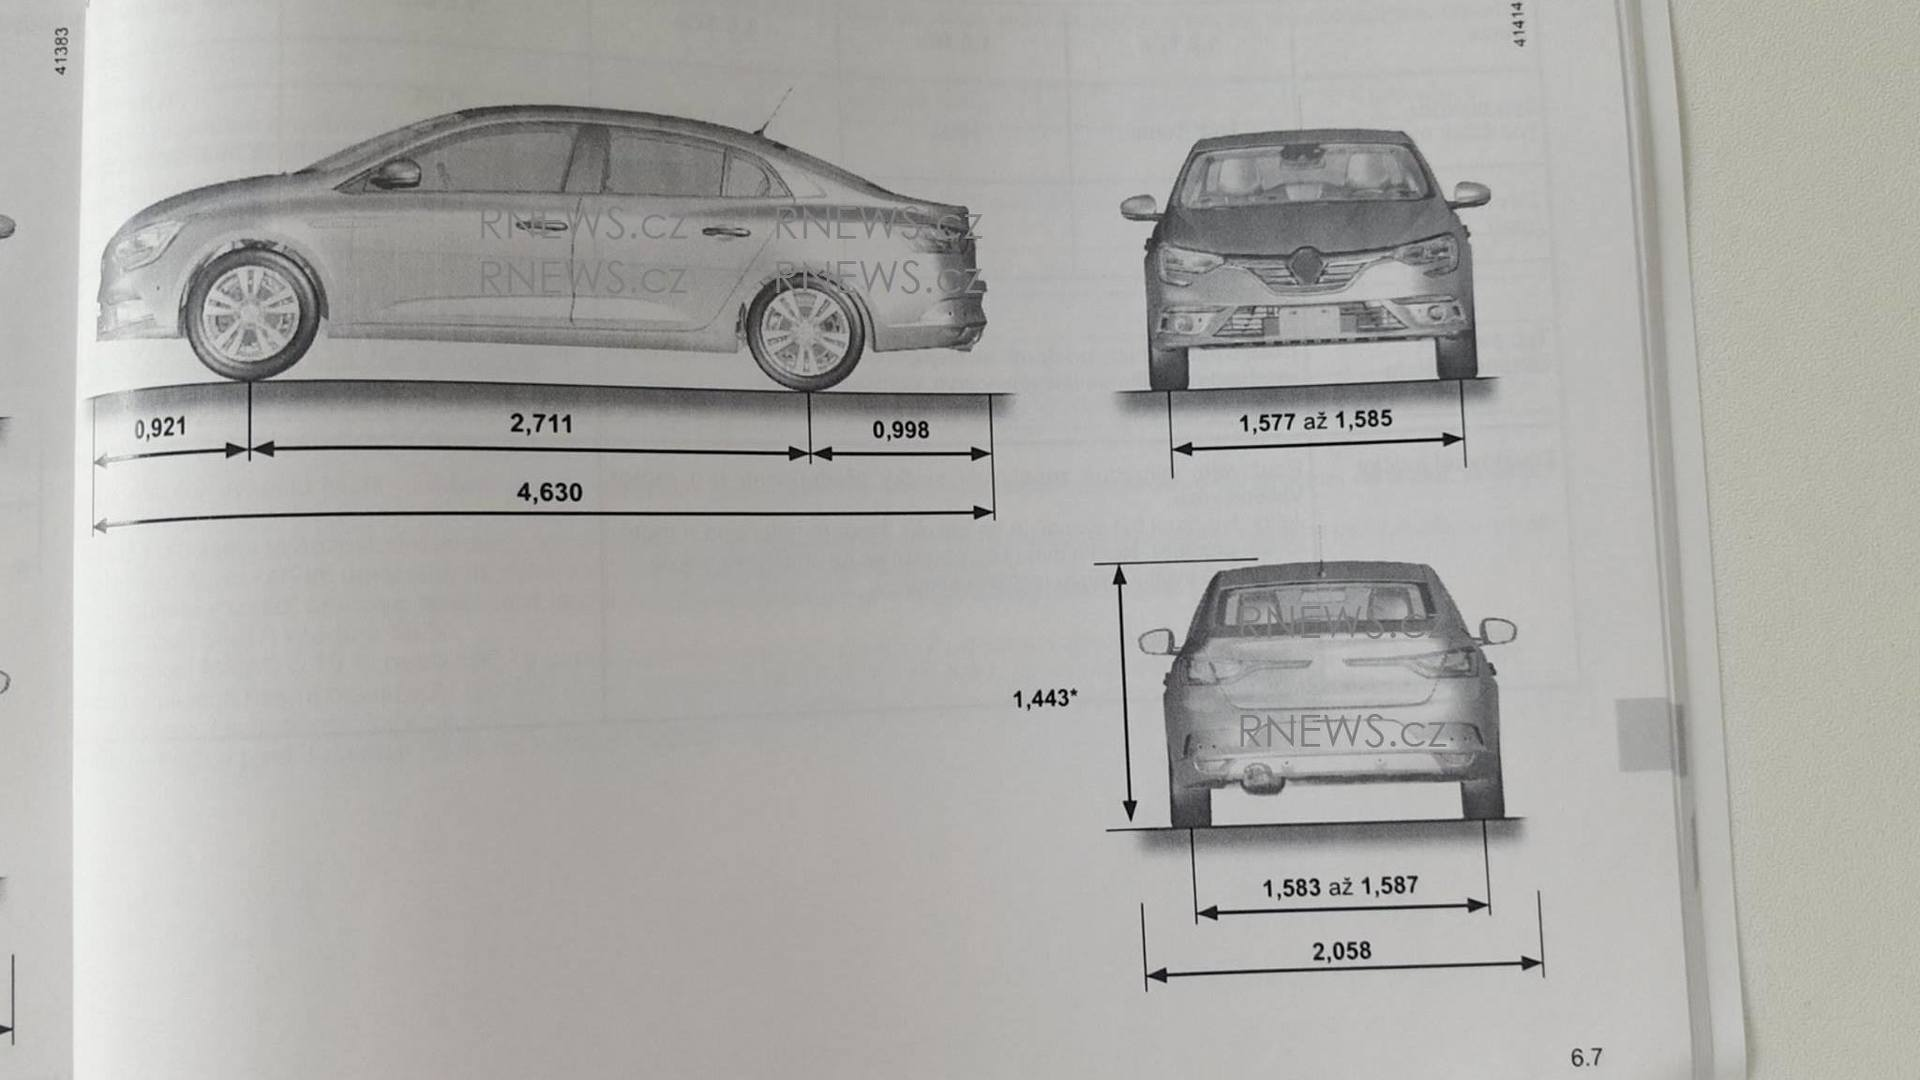 2017 Renault Fluence / Megane Sedan owner's manual leaked